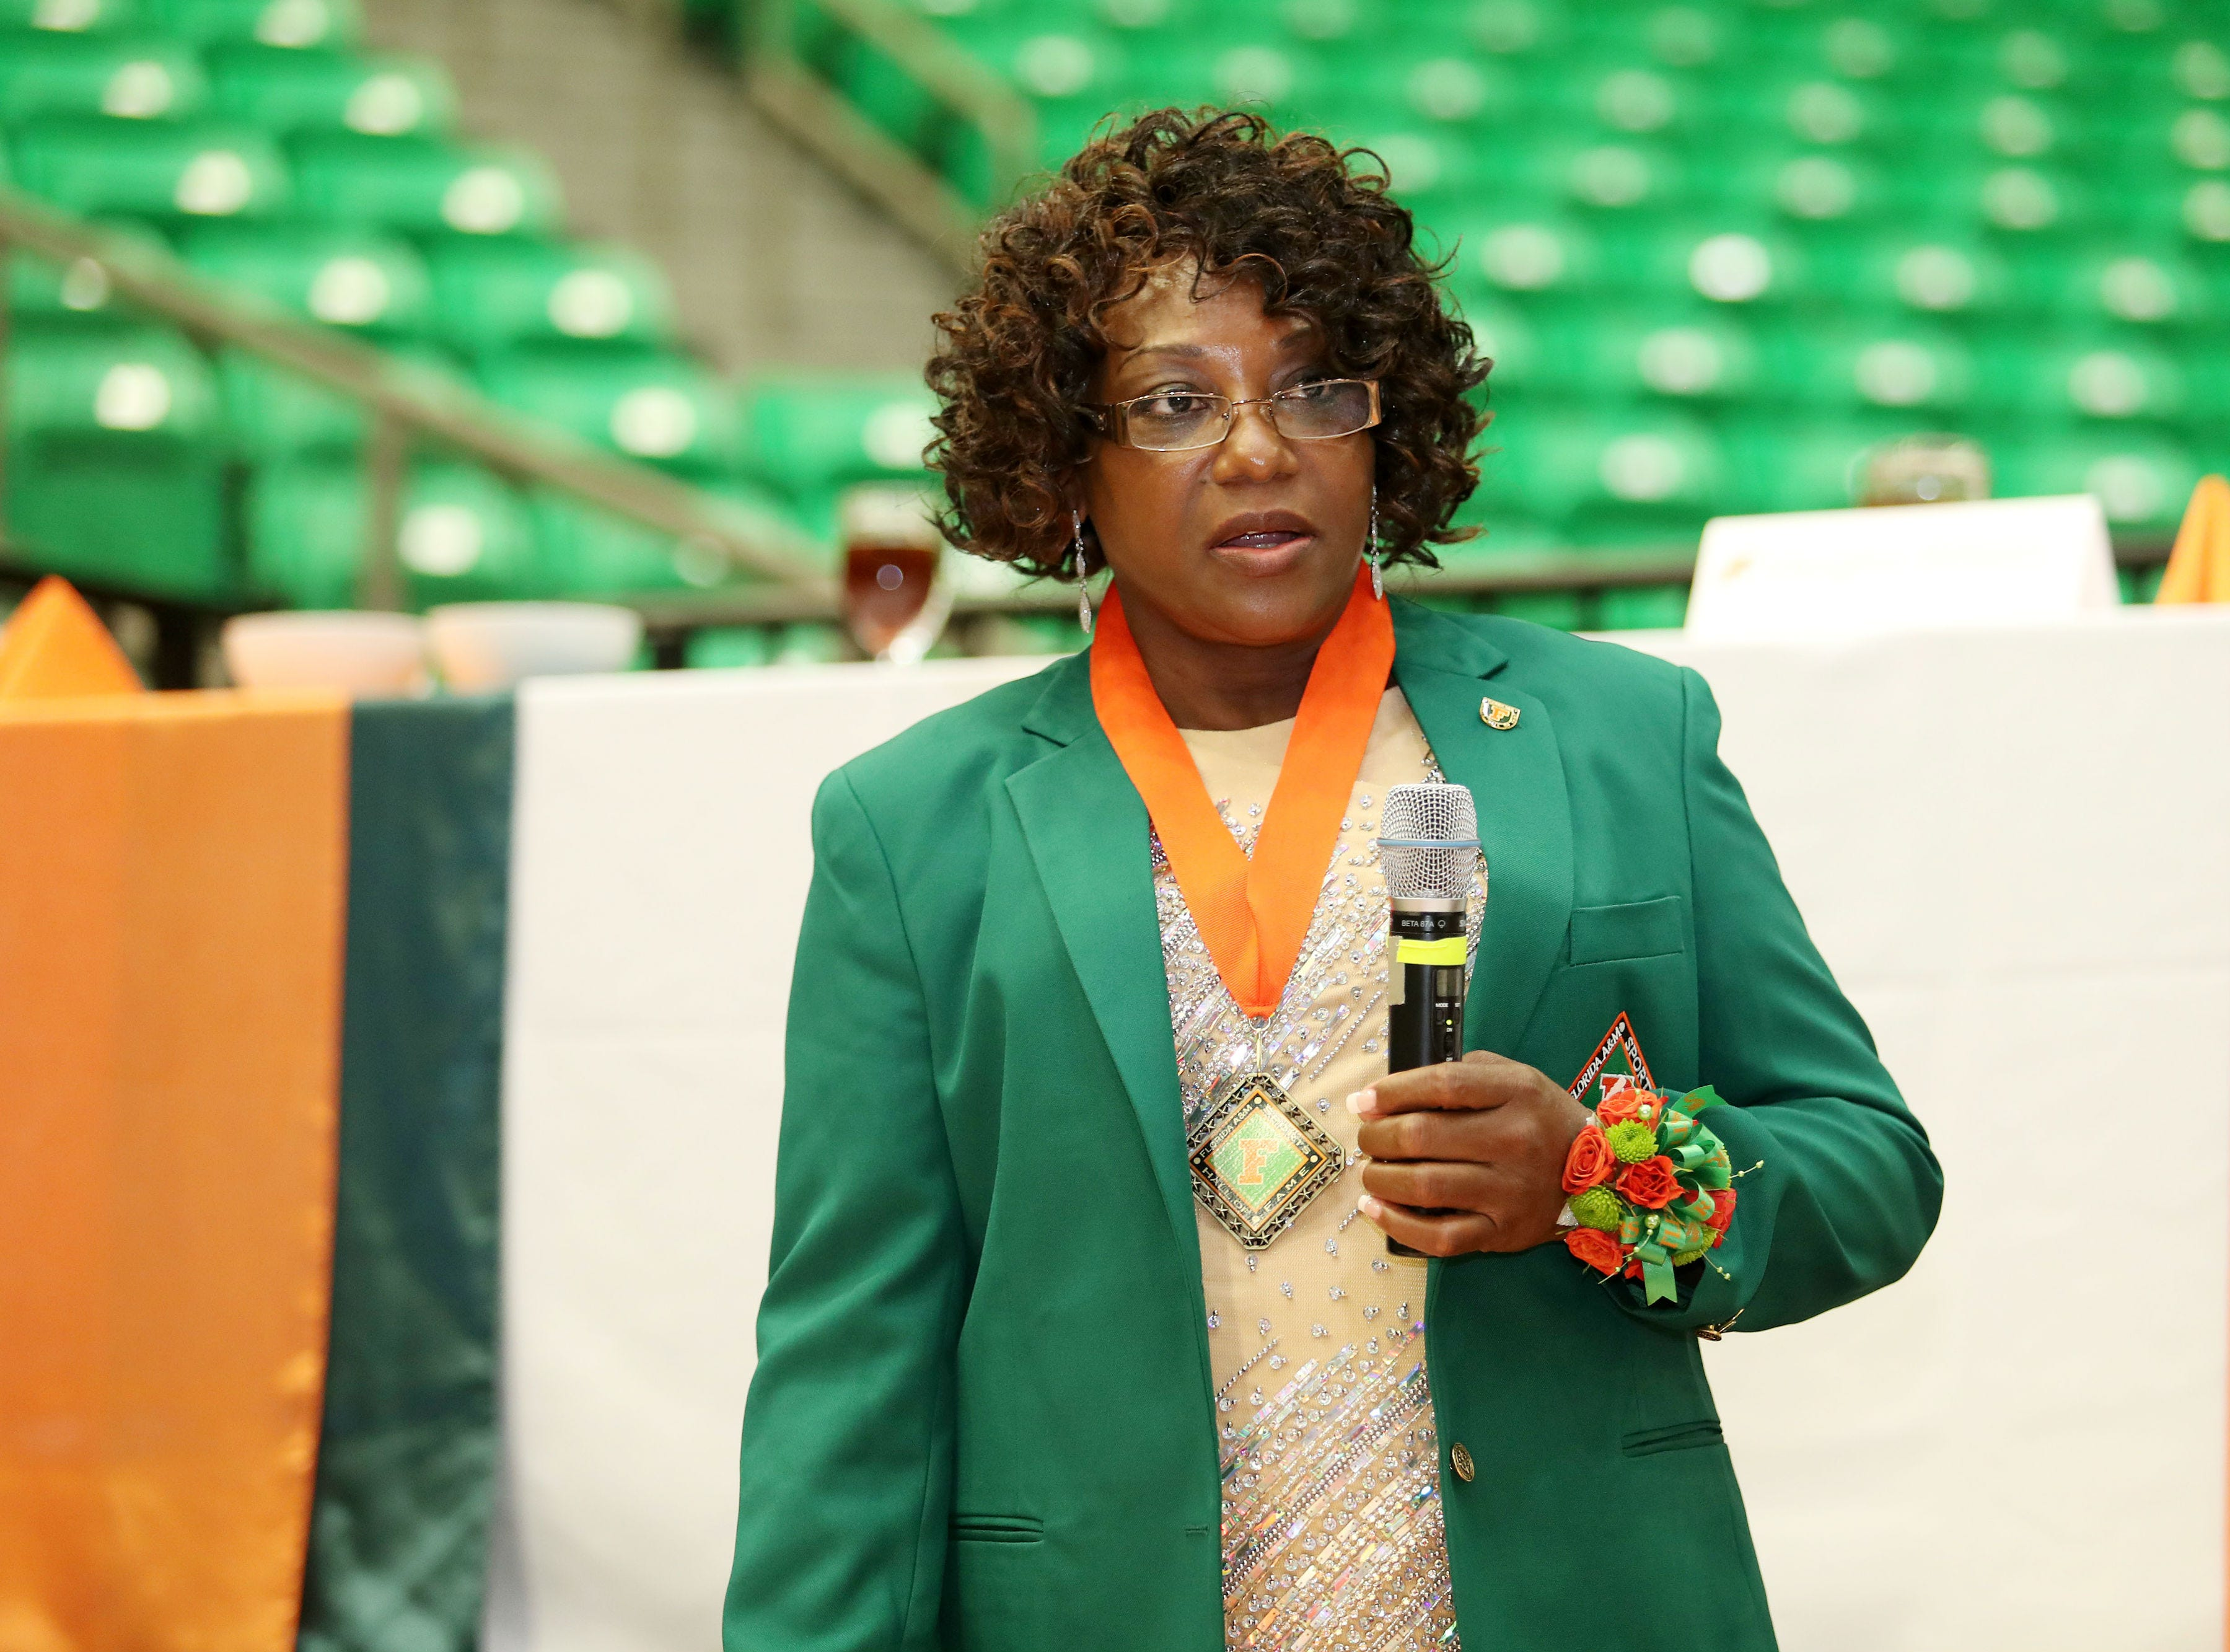 Linda Thomas Minor gives her enshrinement speech. She was a one of the most prolific scorers in FAMU women's basketball history.